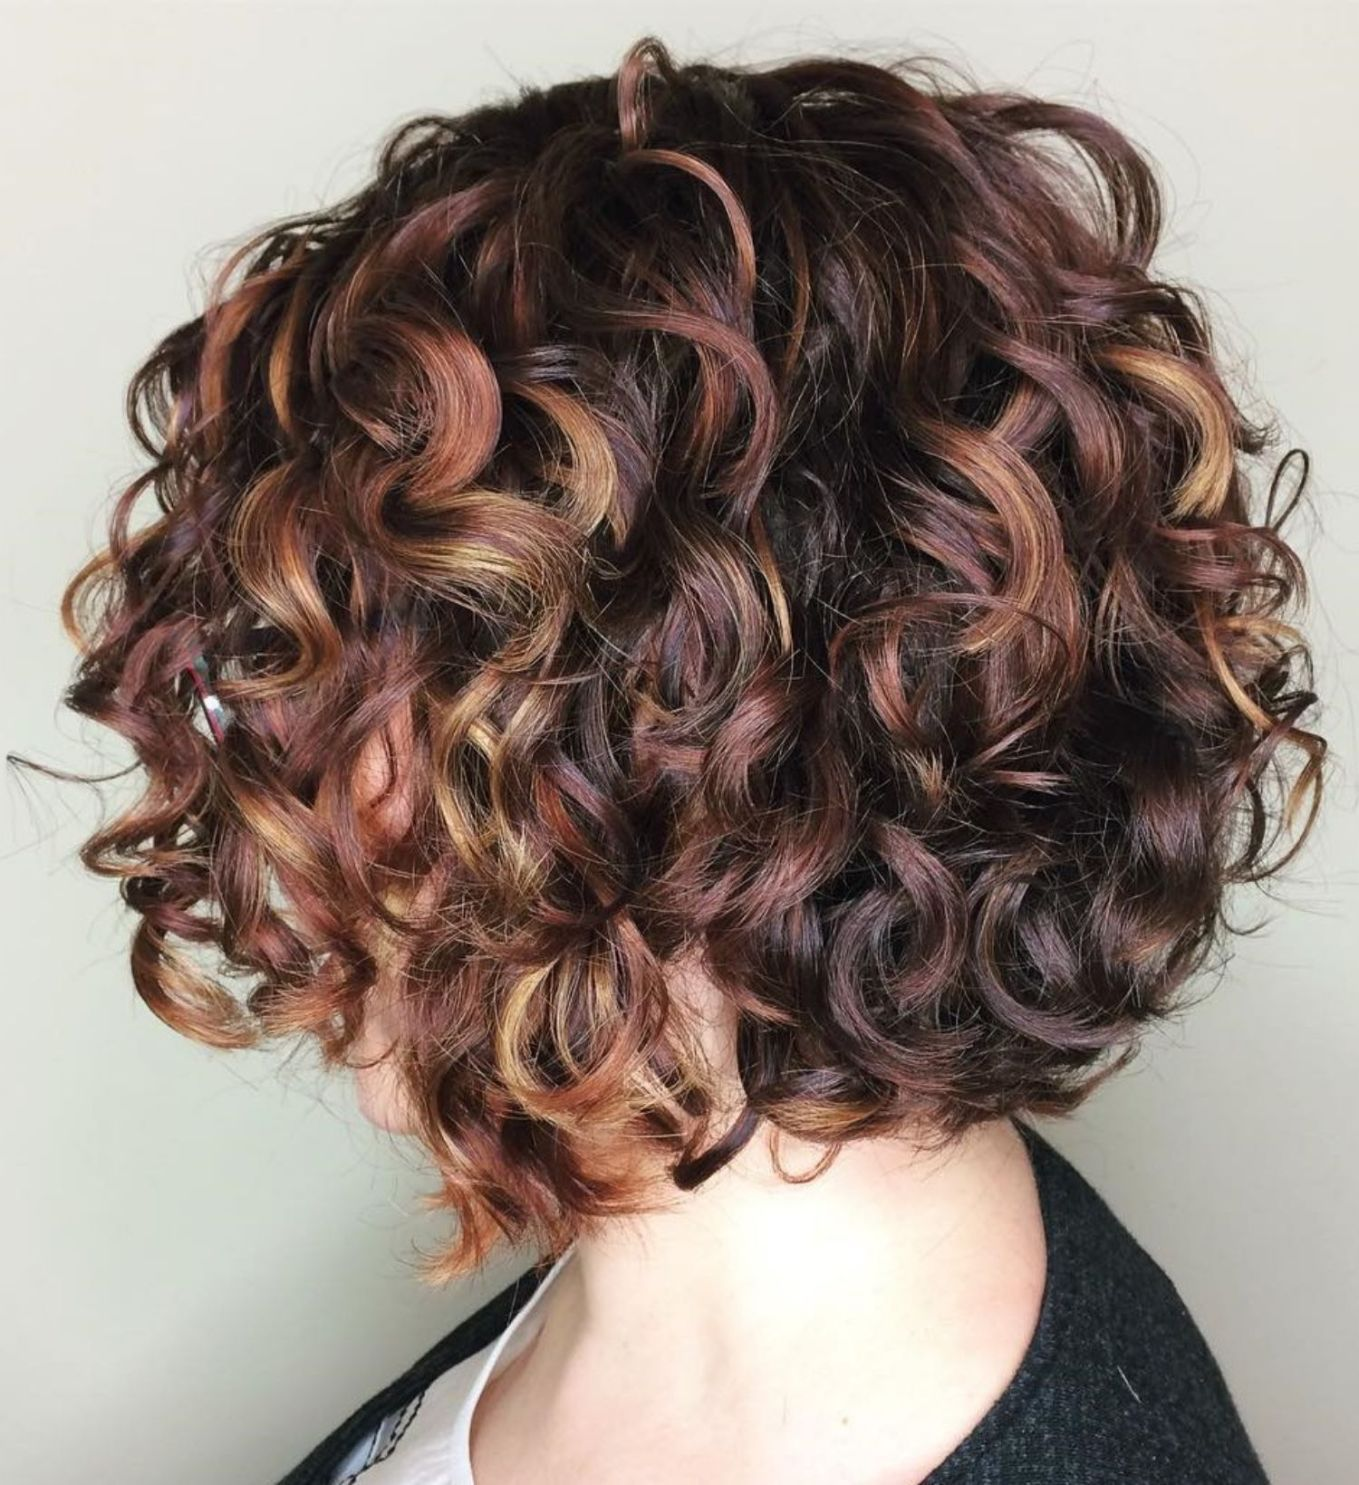 60 Most Delightful Short Wavy Hairstyles Curly Hair Styles Naturally Curly Hair Photos Short Wavy Hair